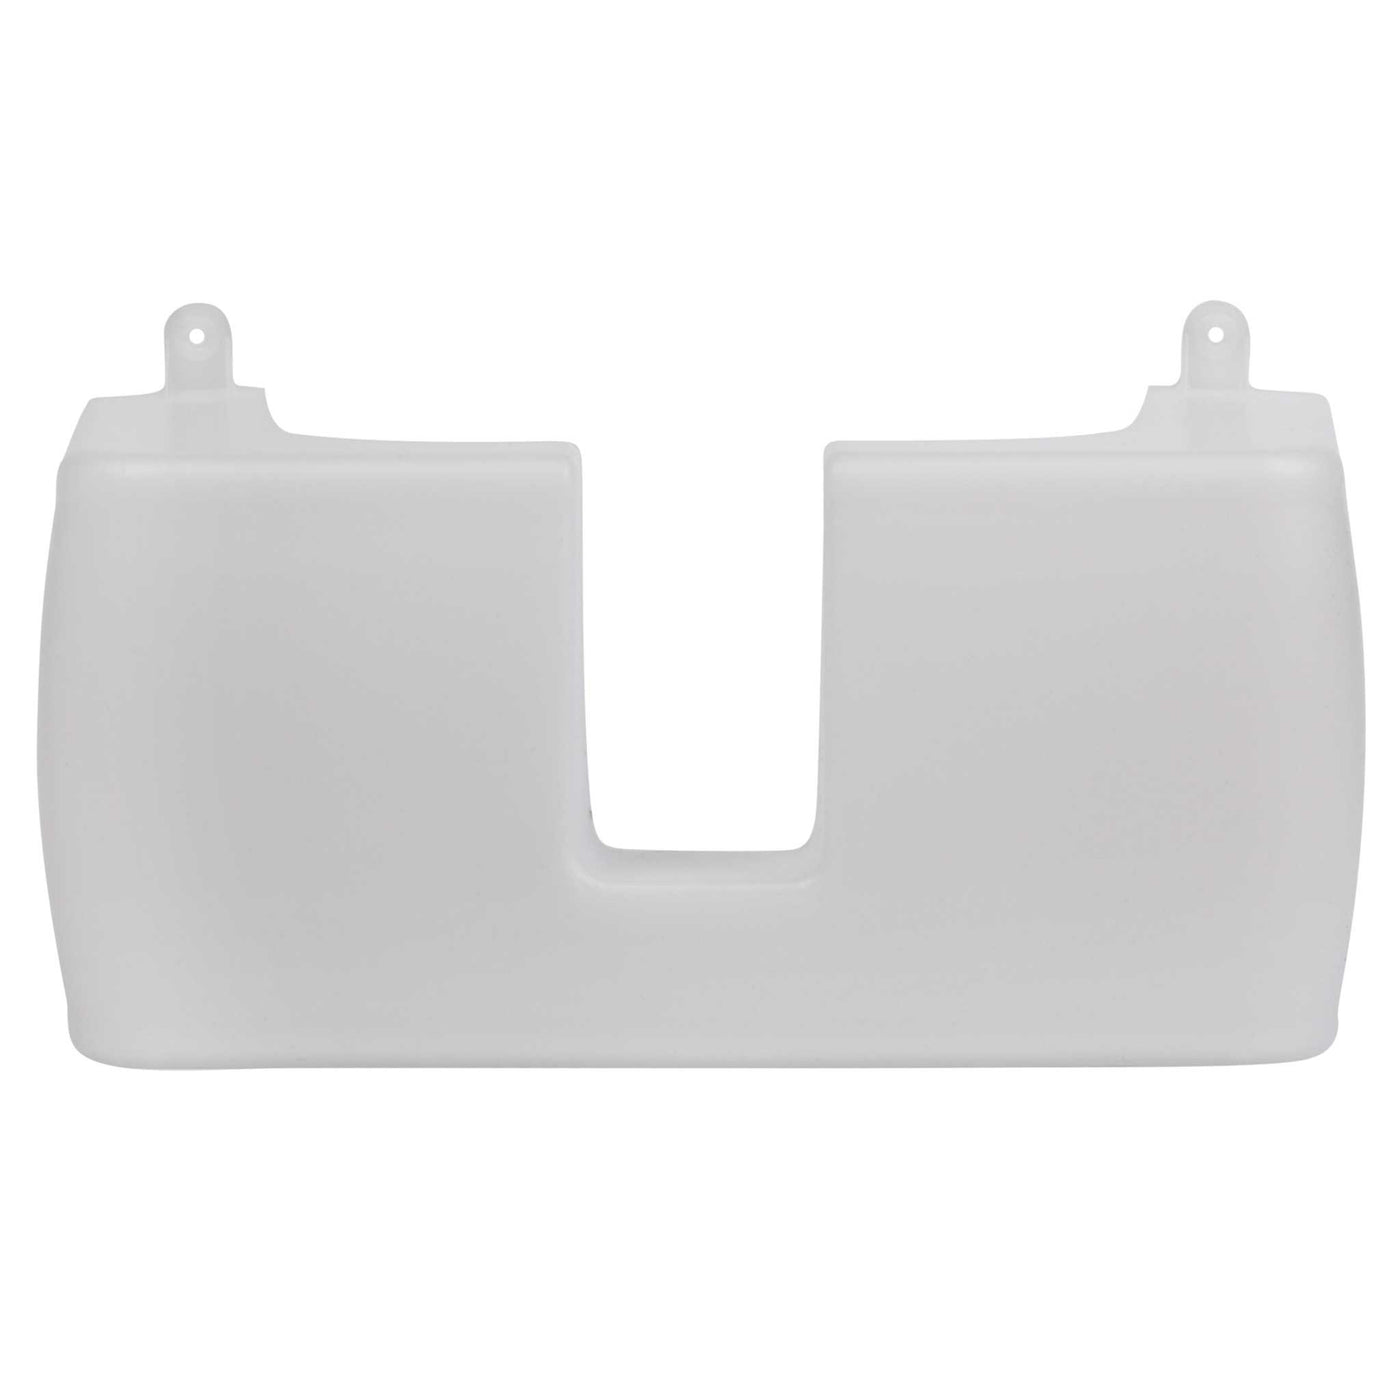 Genie Garage Door Opener Lens Light Cover The Genie